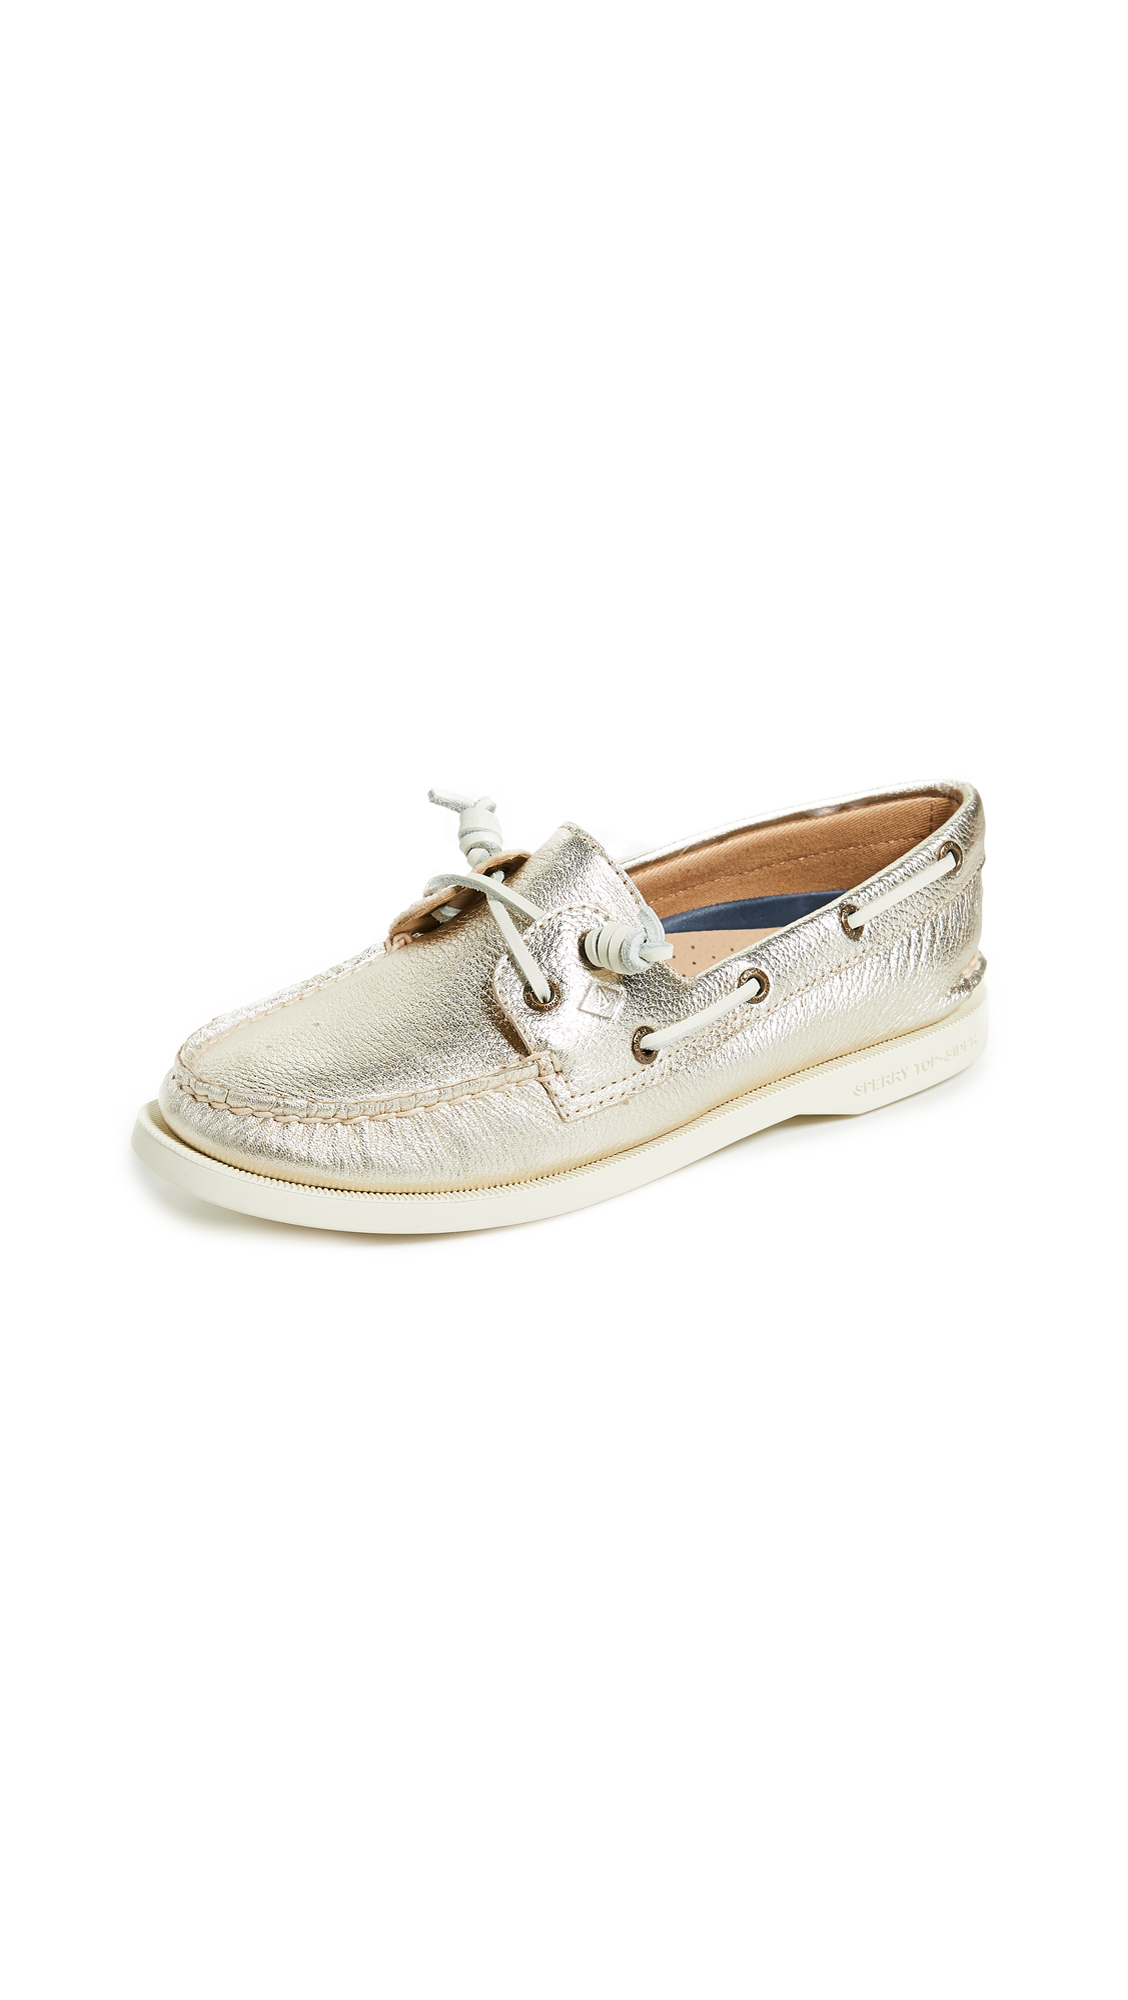 Sperry A/O Vida Metallic Boat Shoes - Platinum